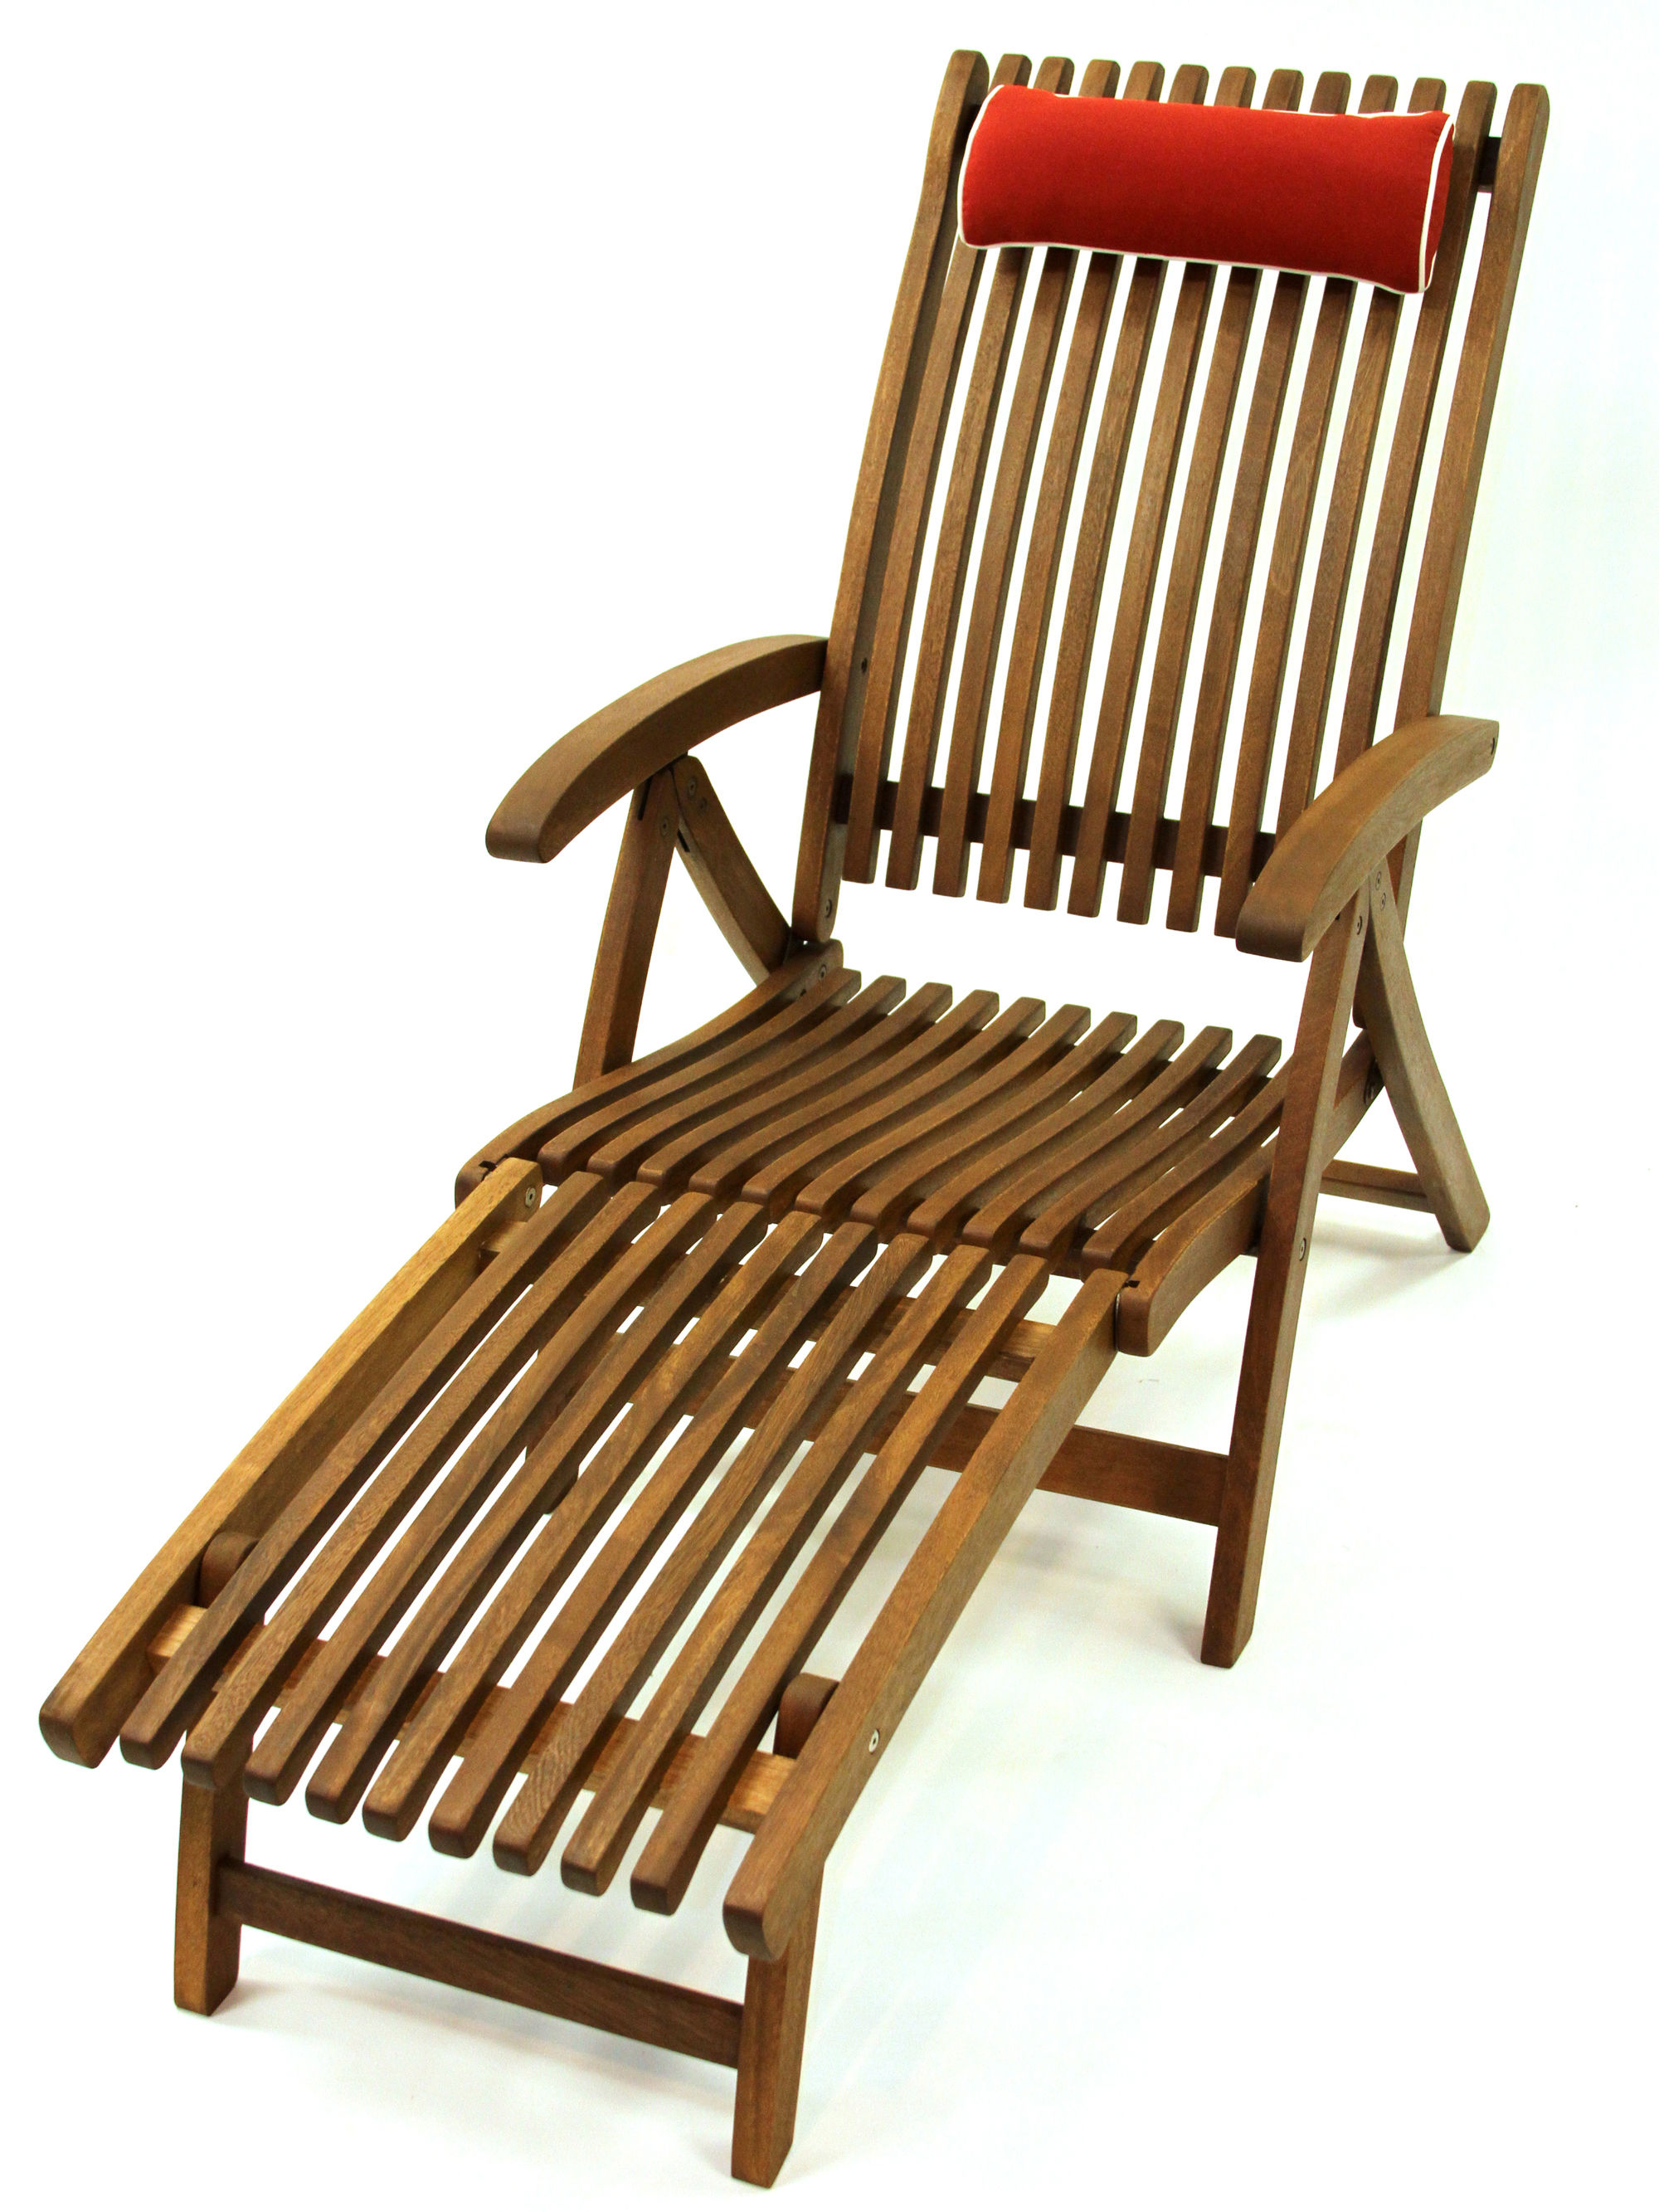 55 Wooden Outdoor Folding Lounge Chairs, Lounger Outdoor Pertaining To Famous Curved Folding Chaise Loungers (View 12 of 25)